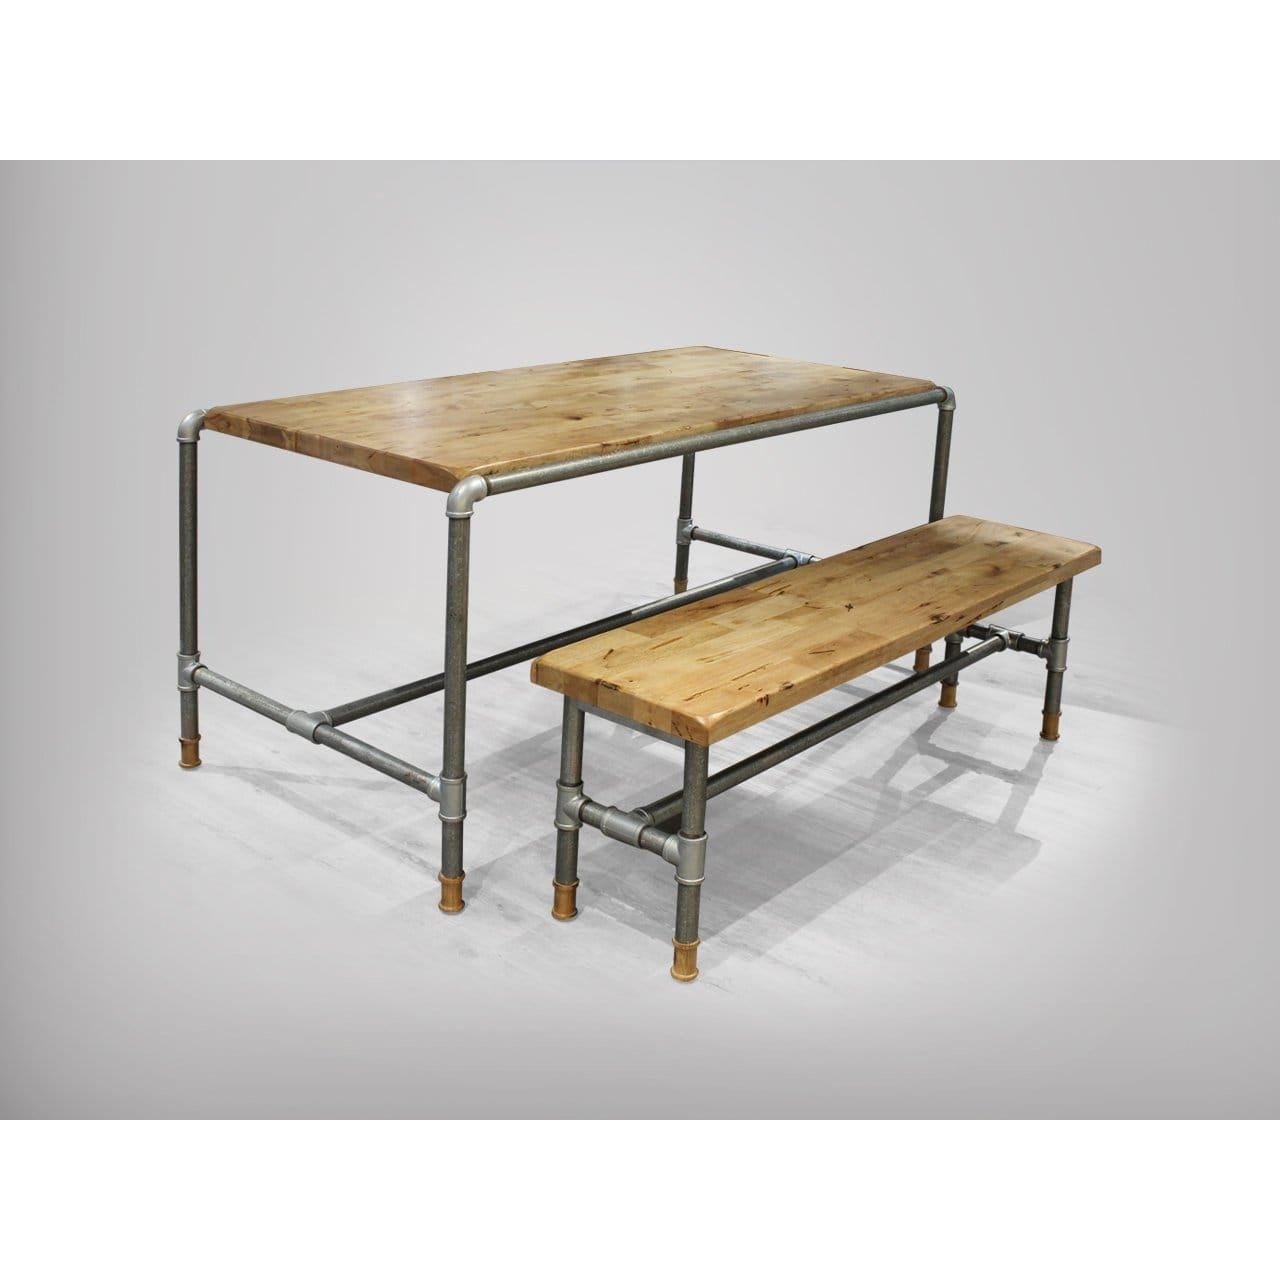 Pipe Dining Table Customisable Comfort Design The Chair Table